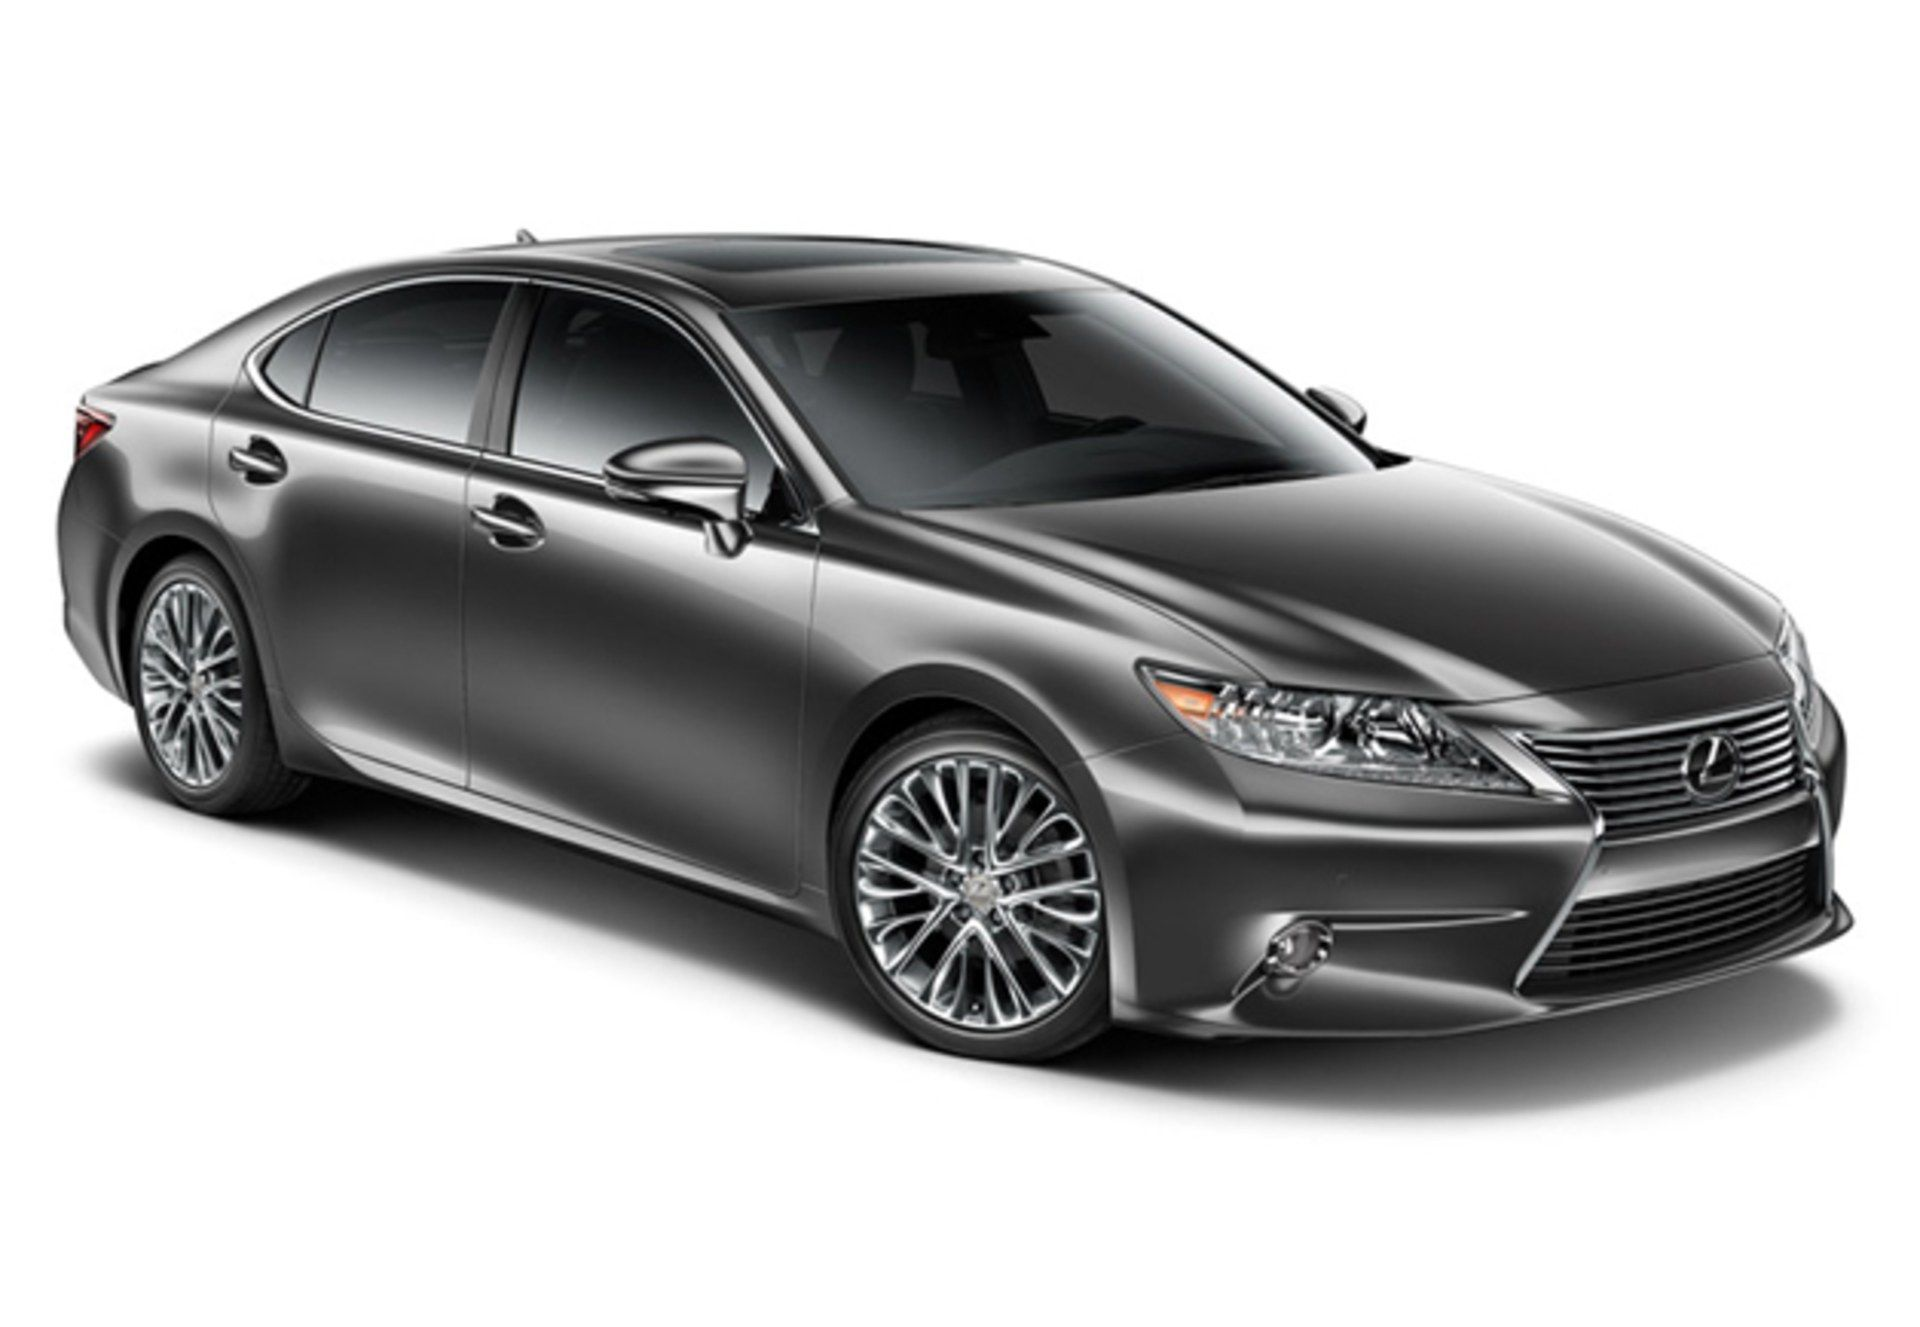 Drive Your Age The Gq Car Buying Guide Lexus Es Used Lexus Lexus Cars